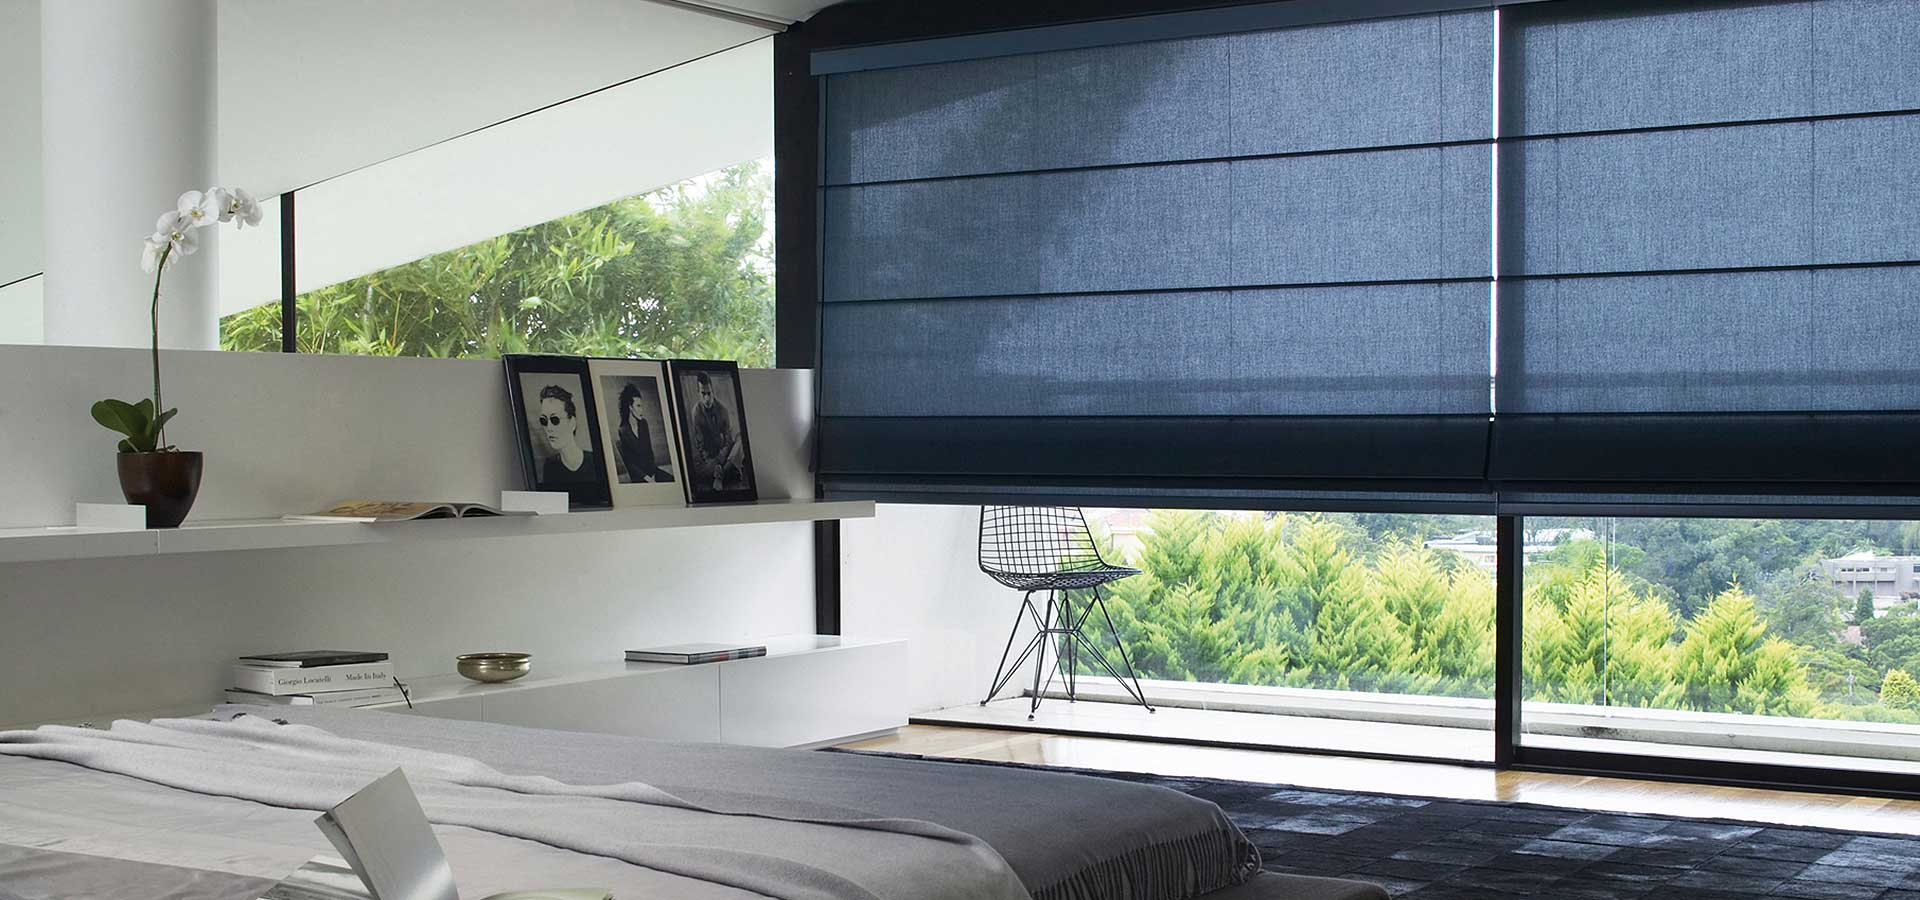 gabriela r cker raumgestaltung wohnen raumausstattung und accessoires fensterdekoration. Black Bedroom Furniture Sets. Home Design Ideas